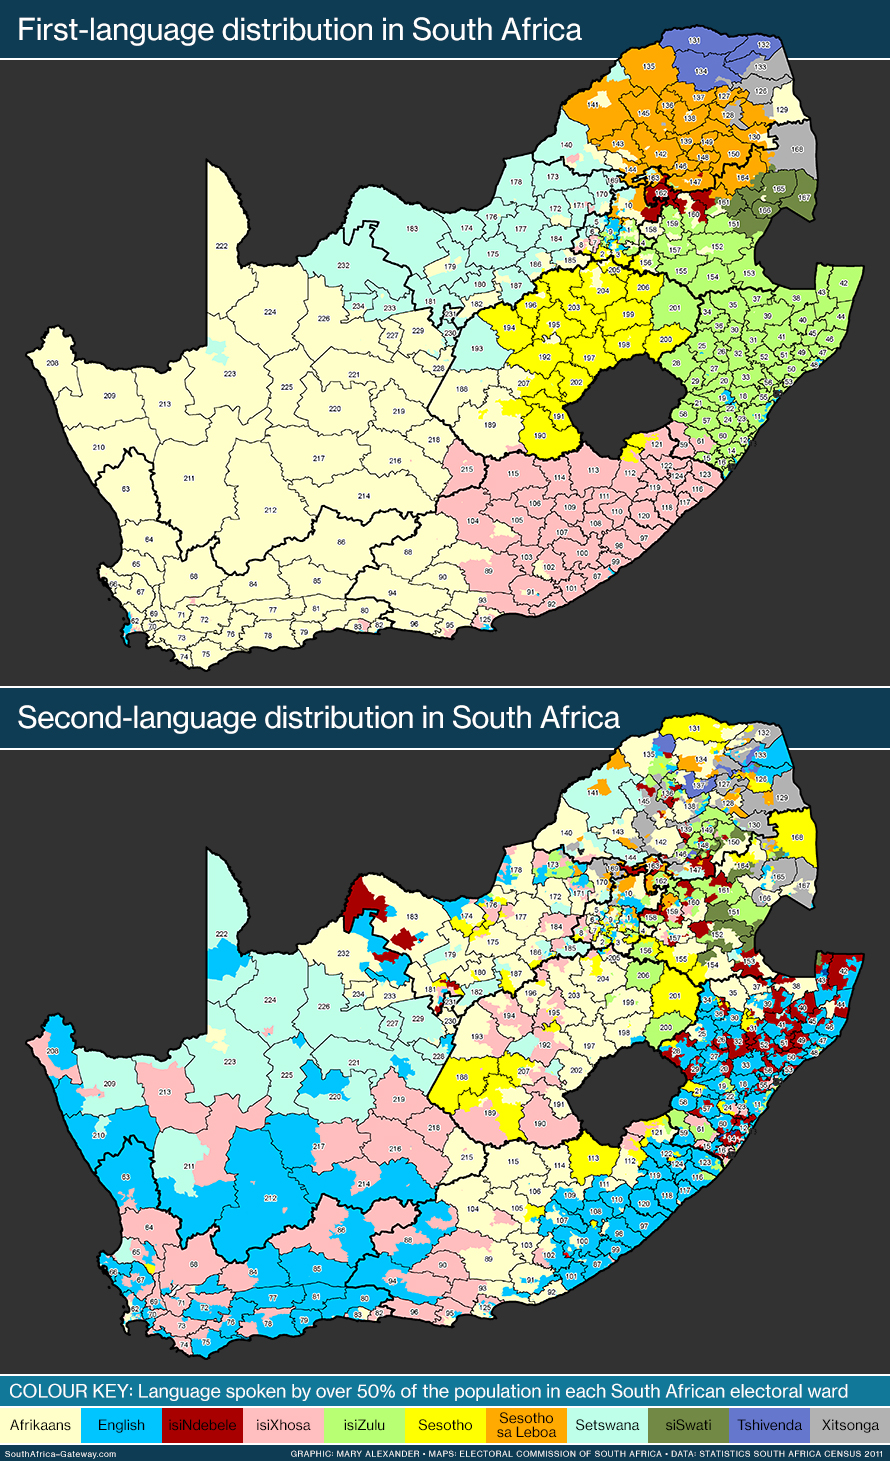 Two maps, the first showing the geographical distribution of first-language speakers, the second showing the geographical distribution of second-language speakers